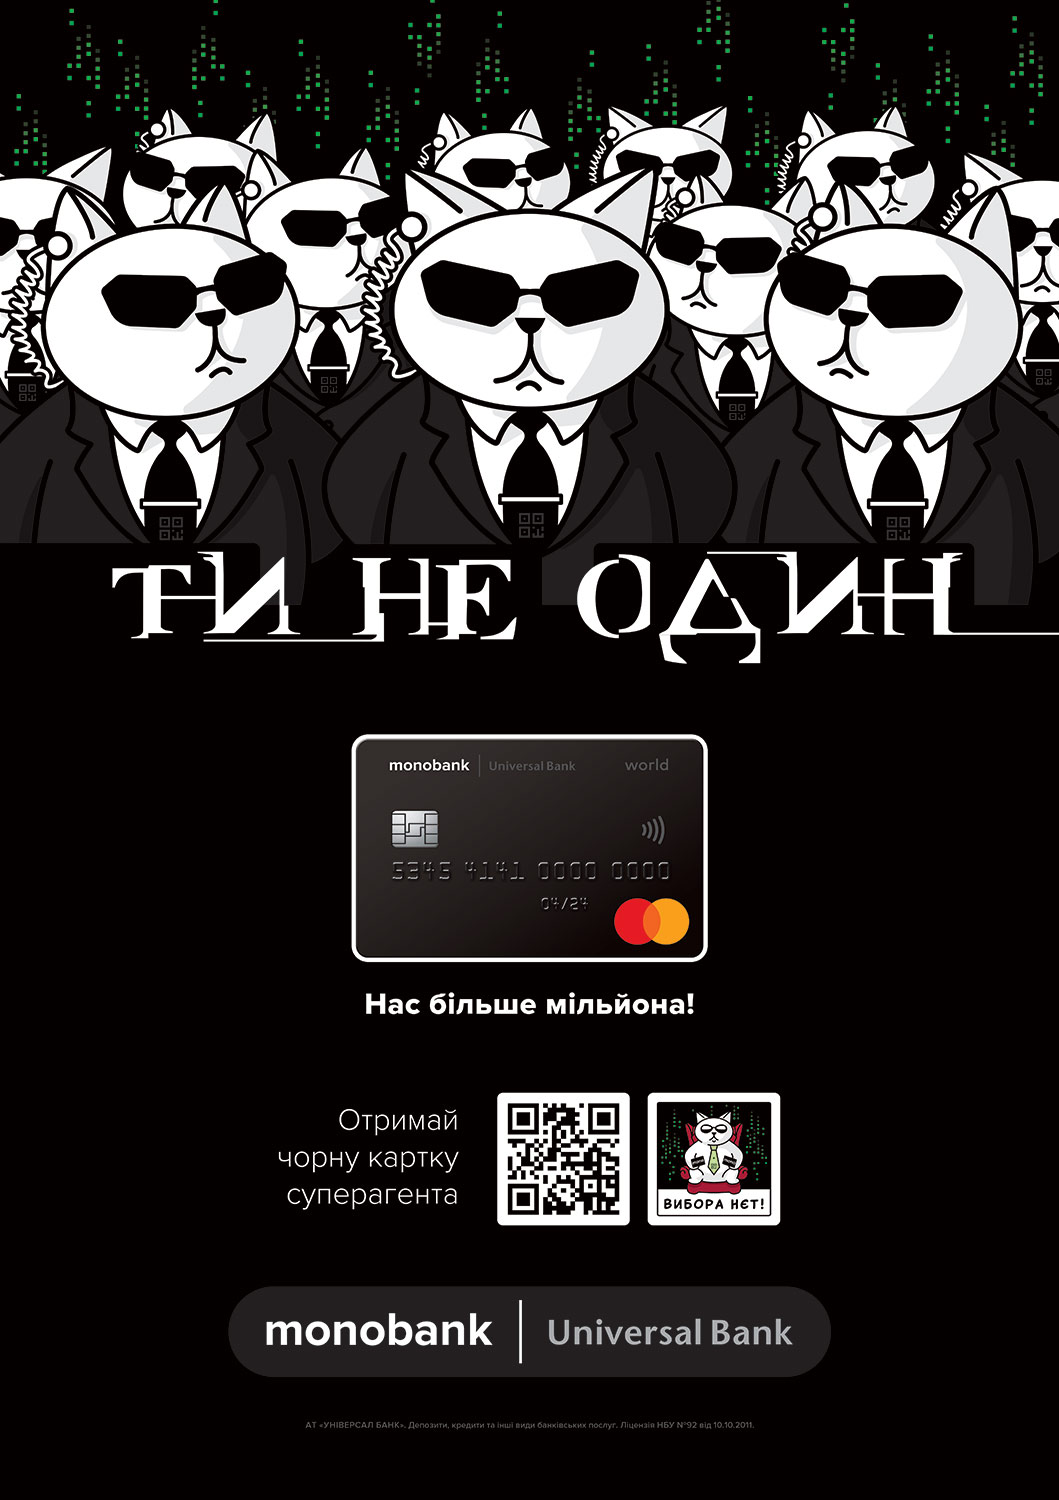 monobank You are not alone—there are more than a million of us! QR cat Agent Smith from The Matrix.